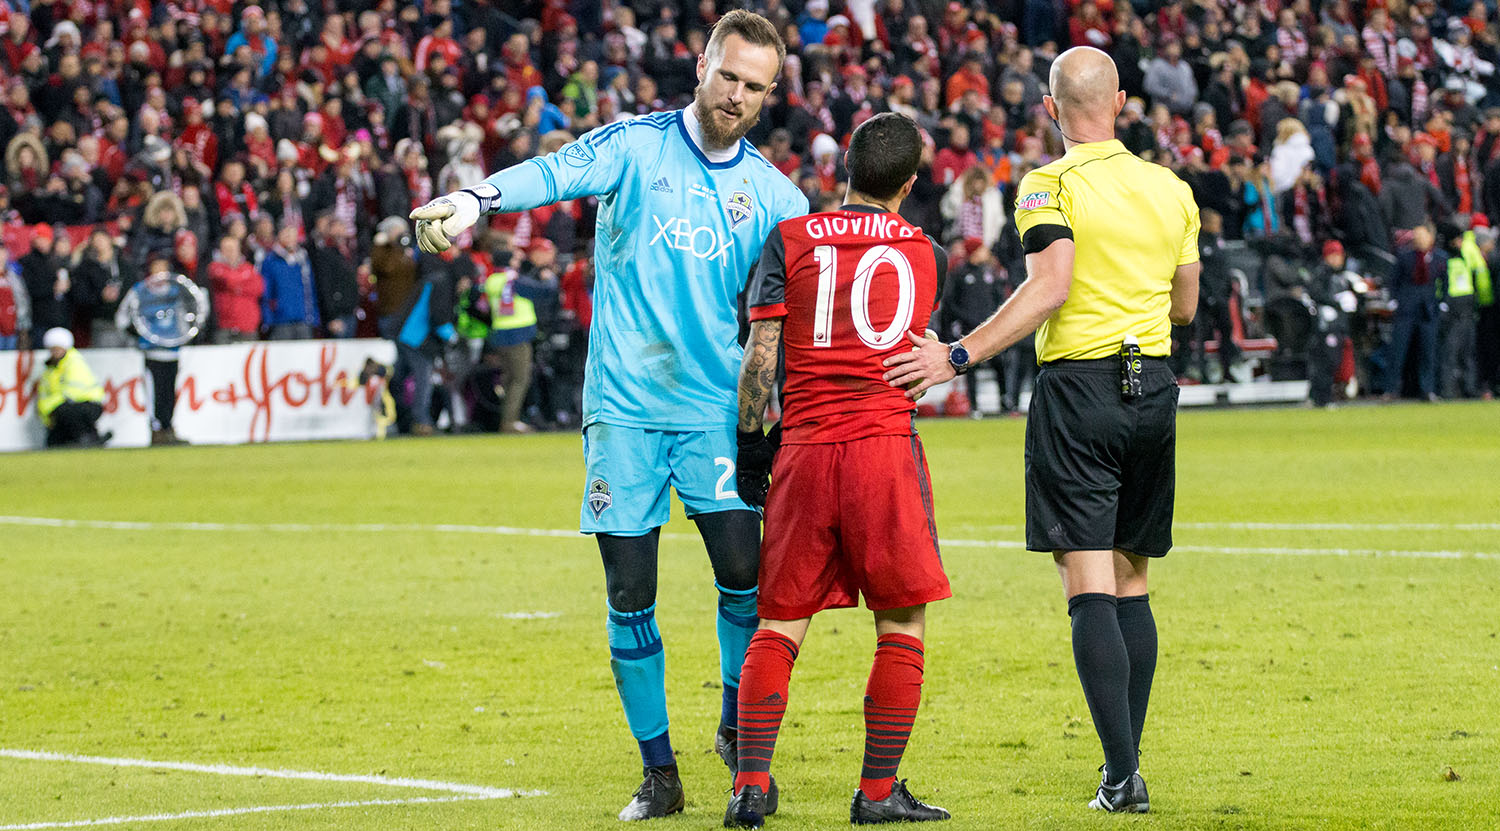 Stefan Frei now tries to convince Sebastian Giovinco to take it to the end line in hopes of playing with 10 men for a few minutes.Image by Dennis Marciniak of denMAR Media.